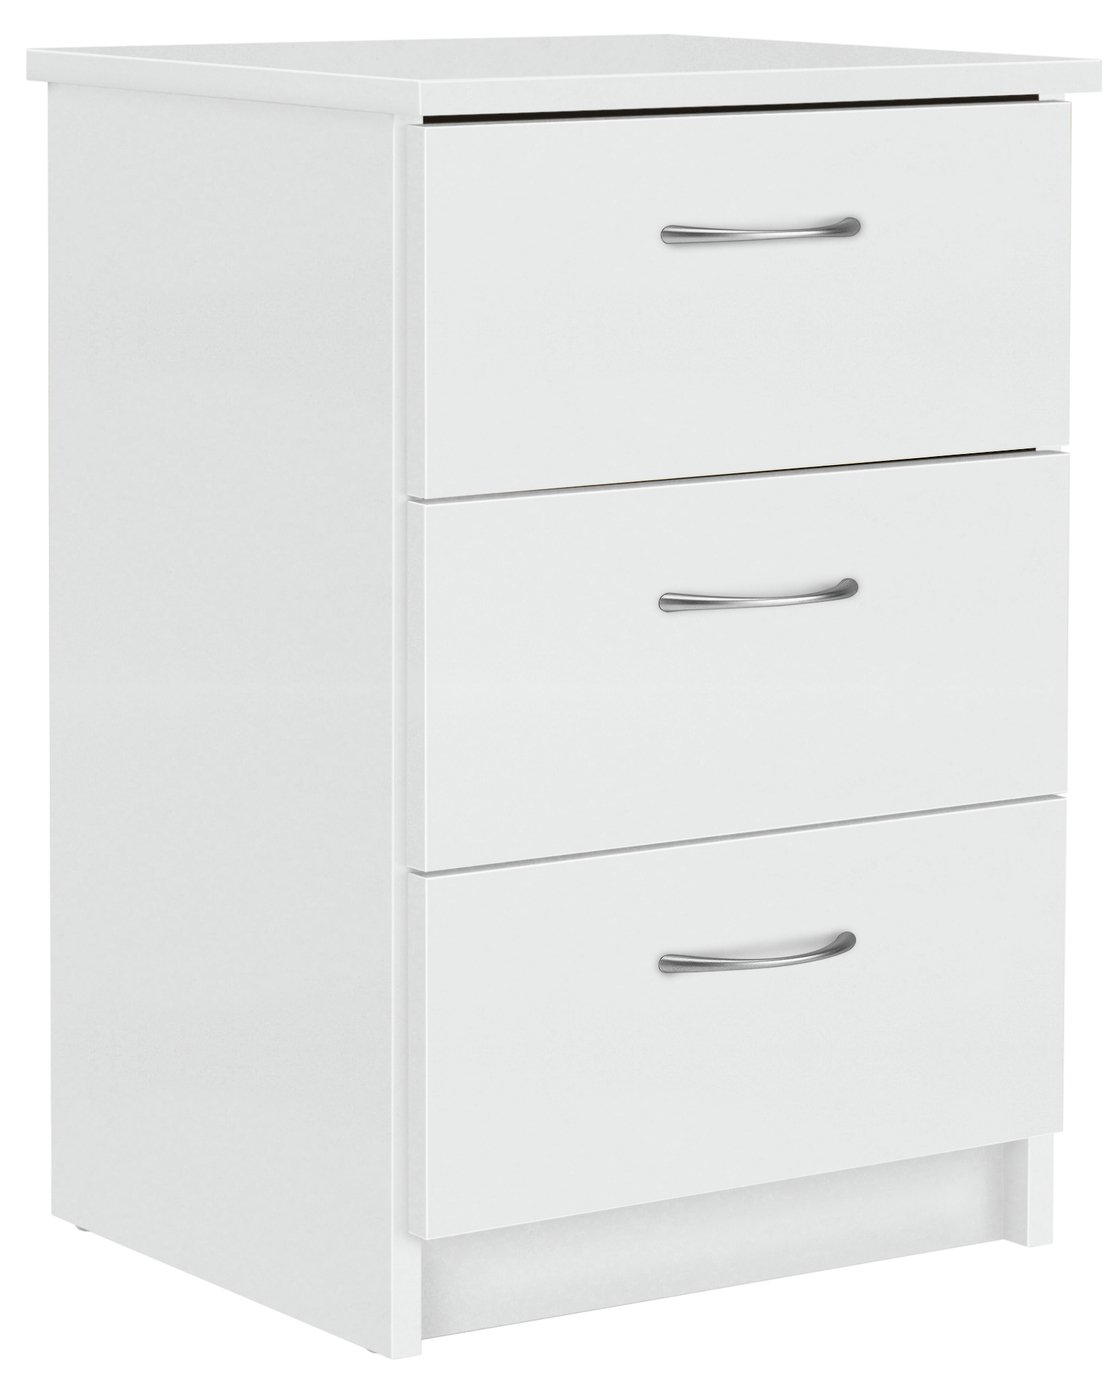 Argos bedside tables chests and bedside cabinets for Argos kitchen cabinets